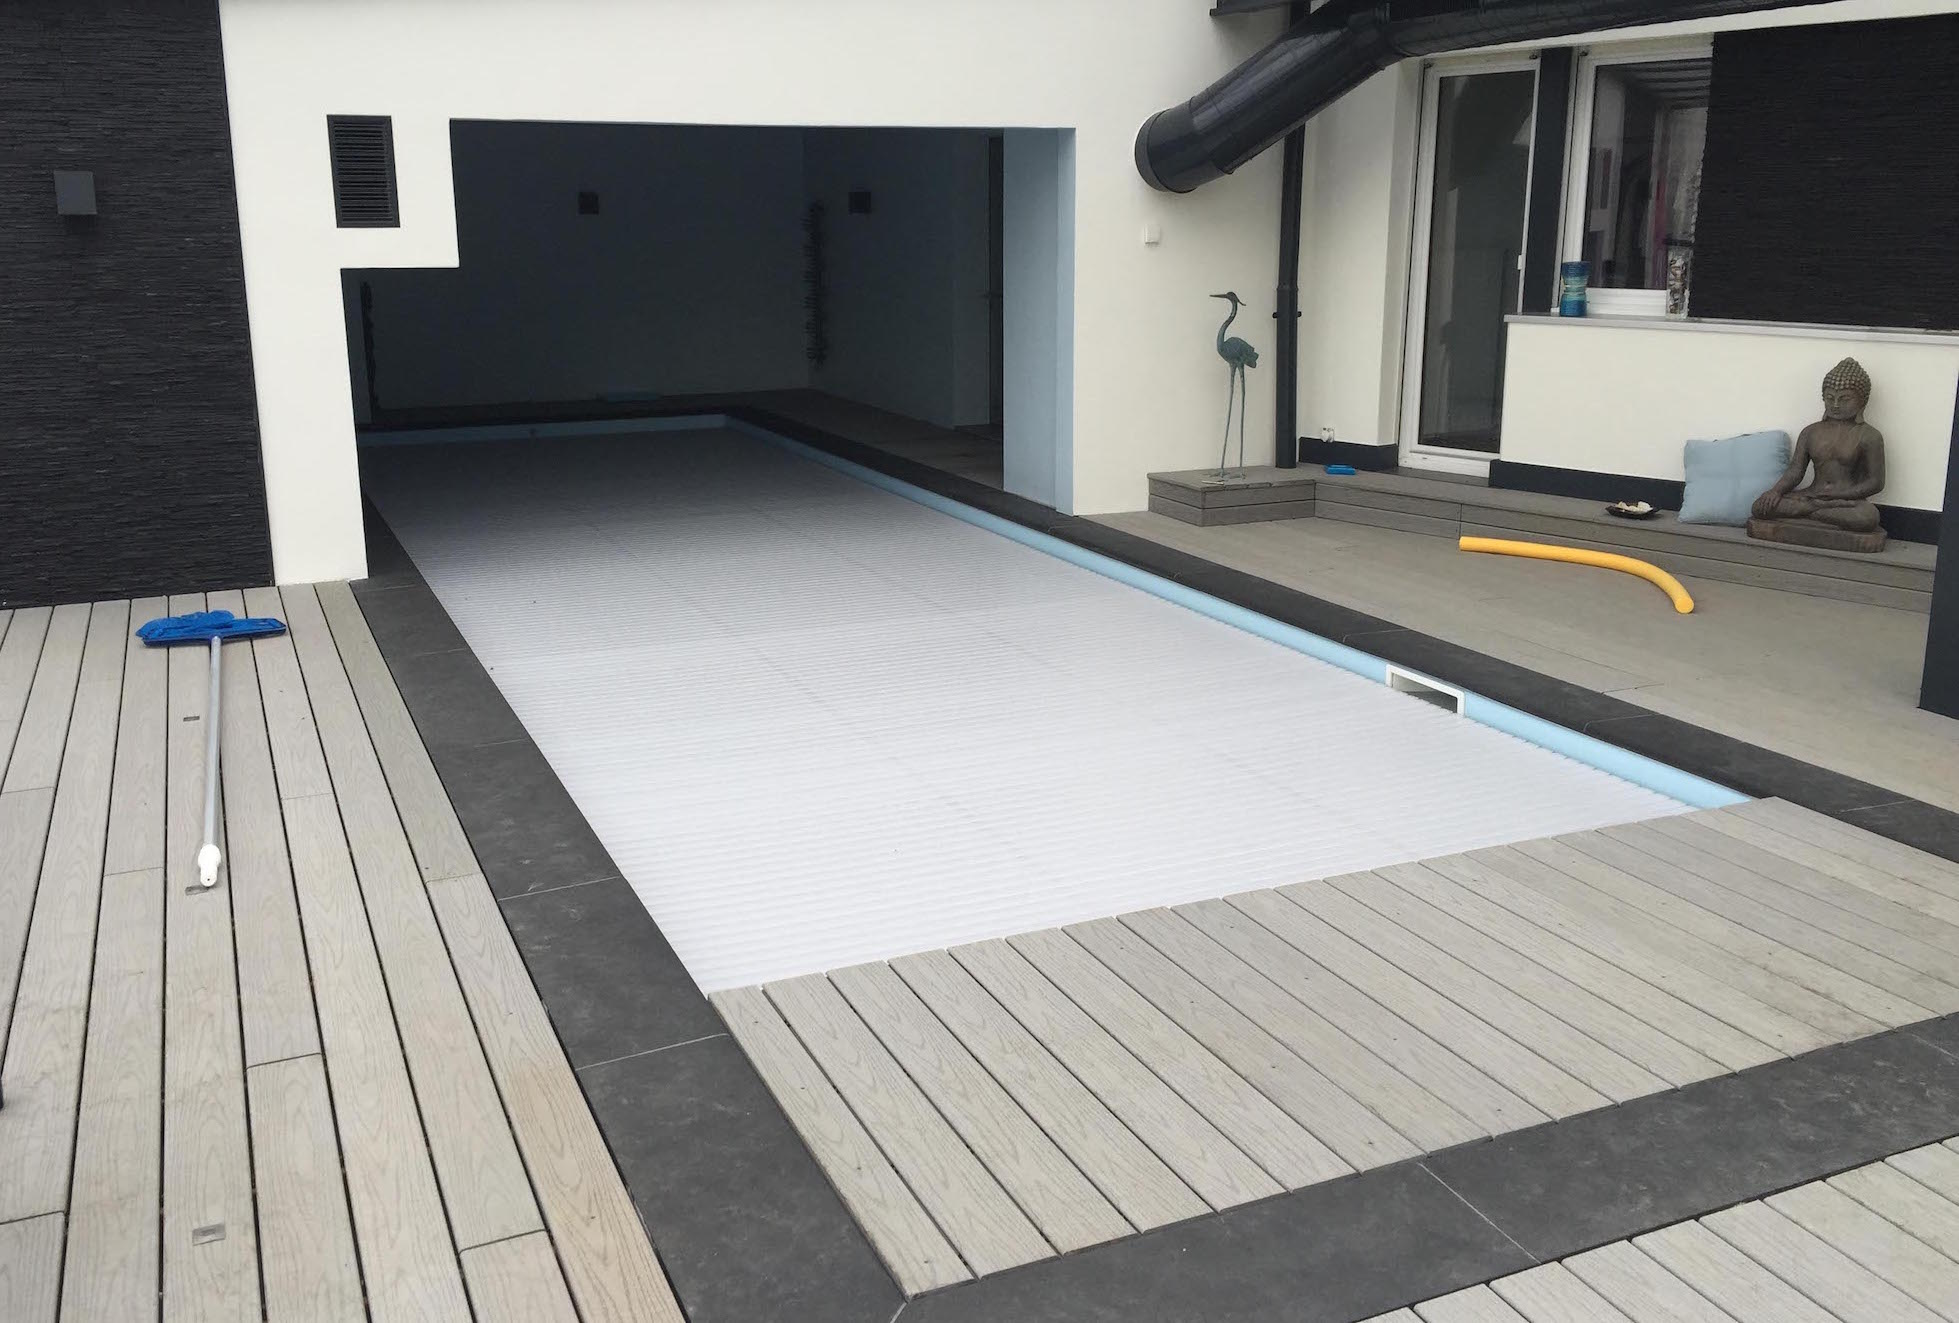 Entourage Piscine complet finition anthracite